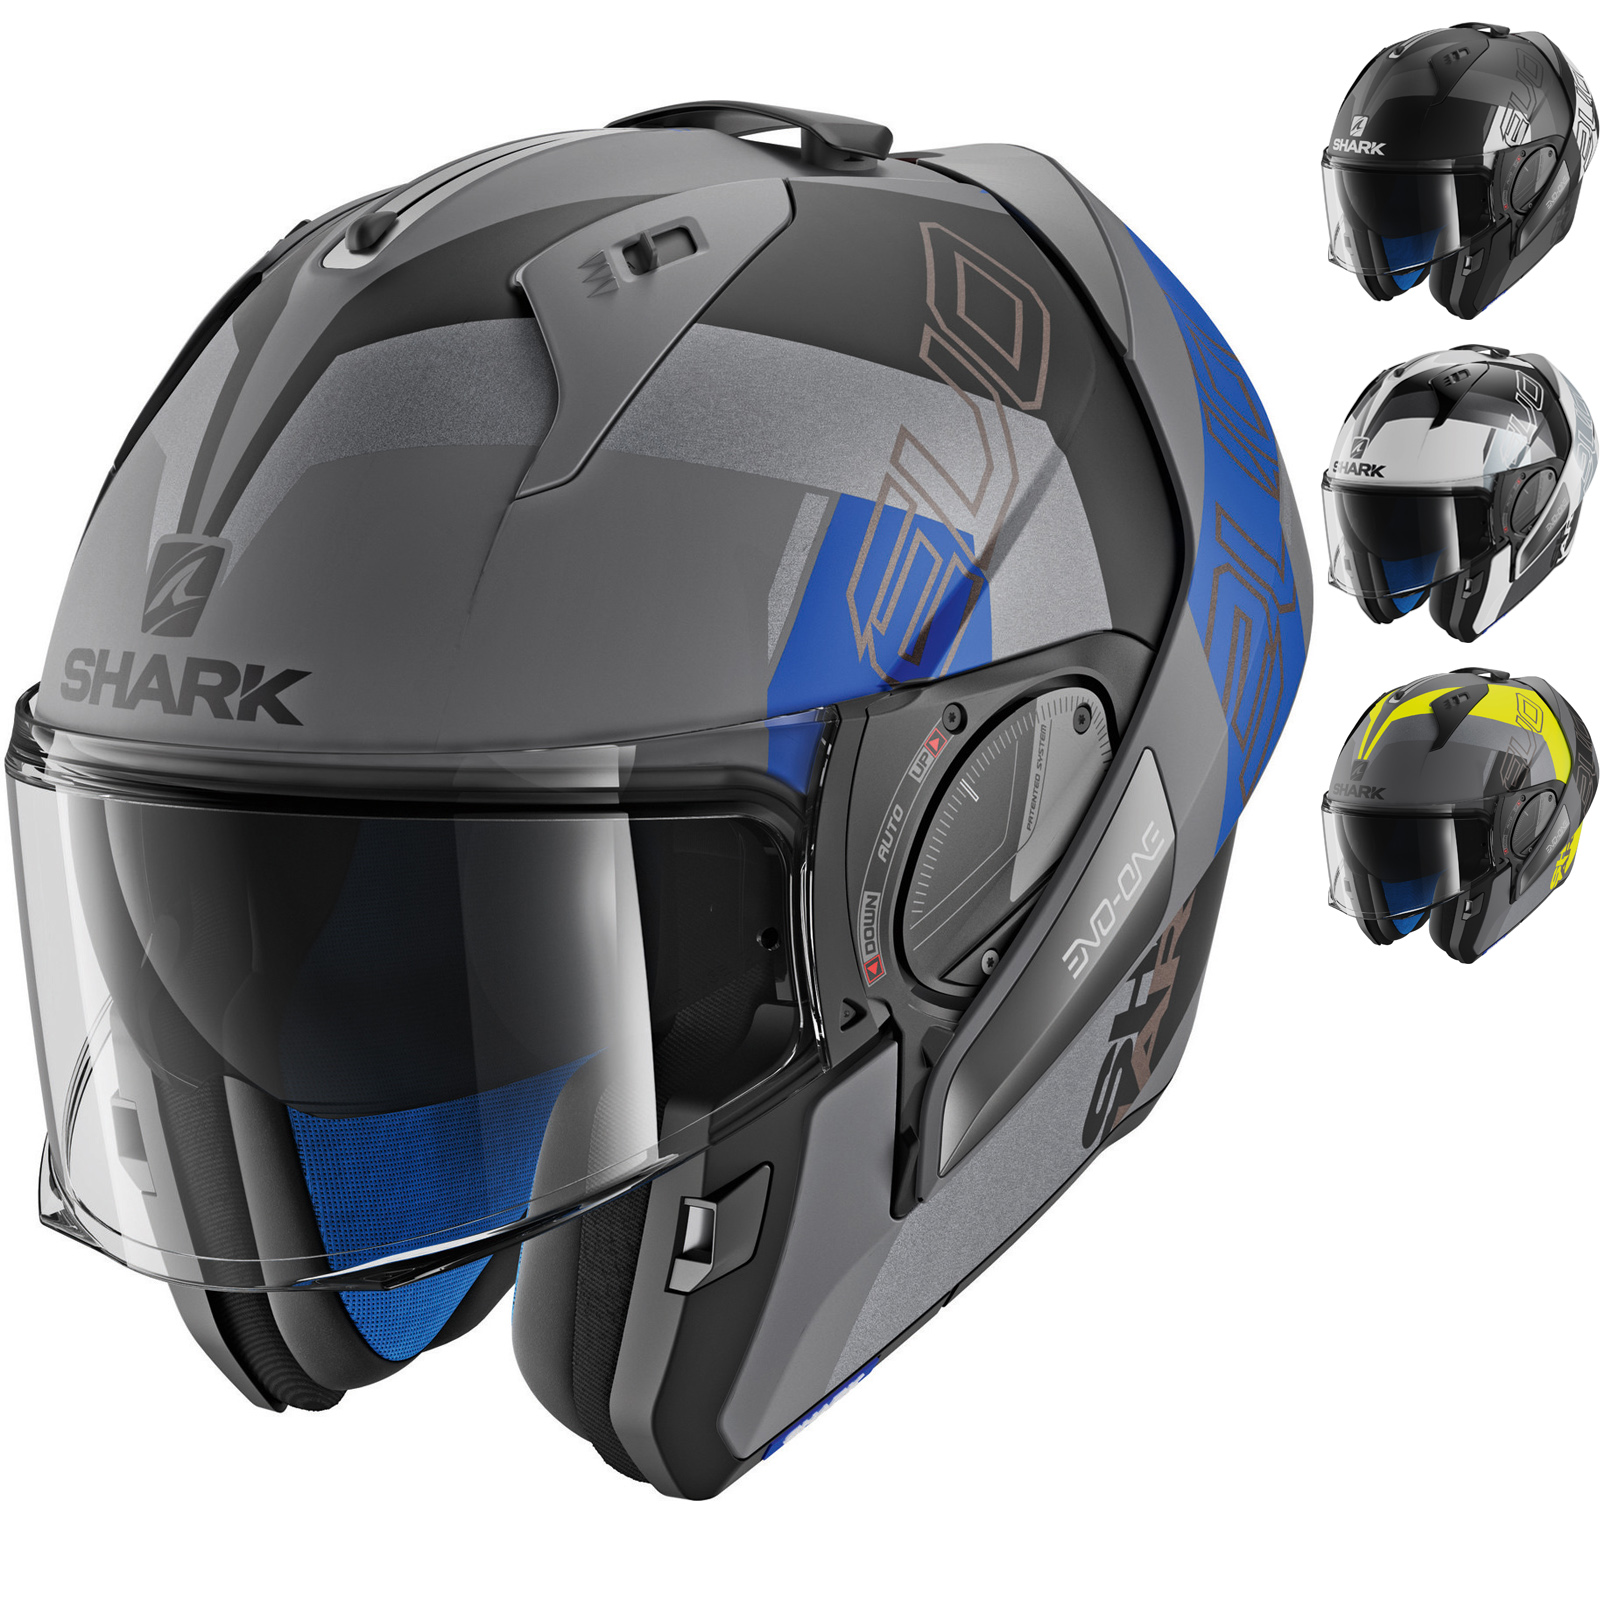 shark evo one 2 slasher flip front motorcycle helmet new arrivals. Black Bedroom Furniture Sets. Home Design Ideas